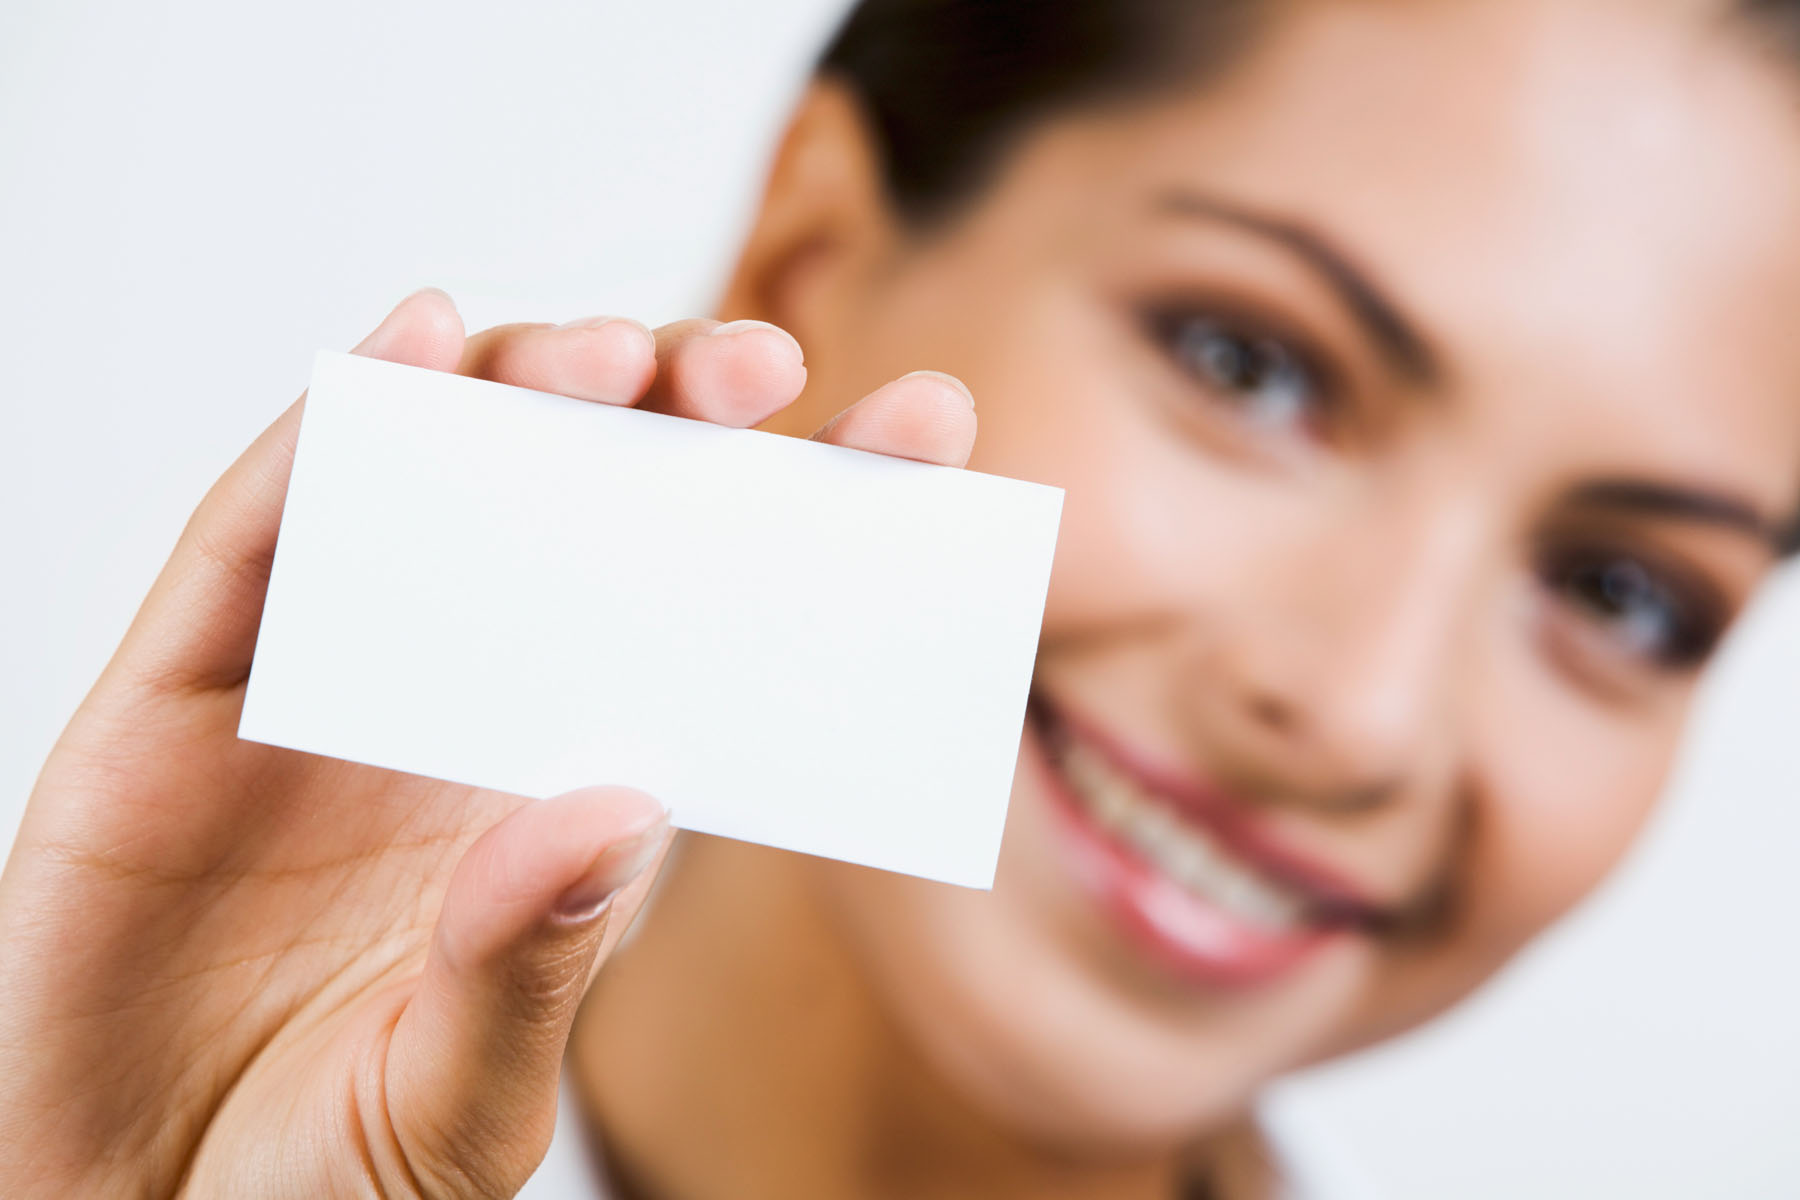 Holding blank business card material 23724